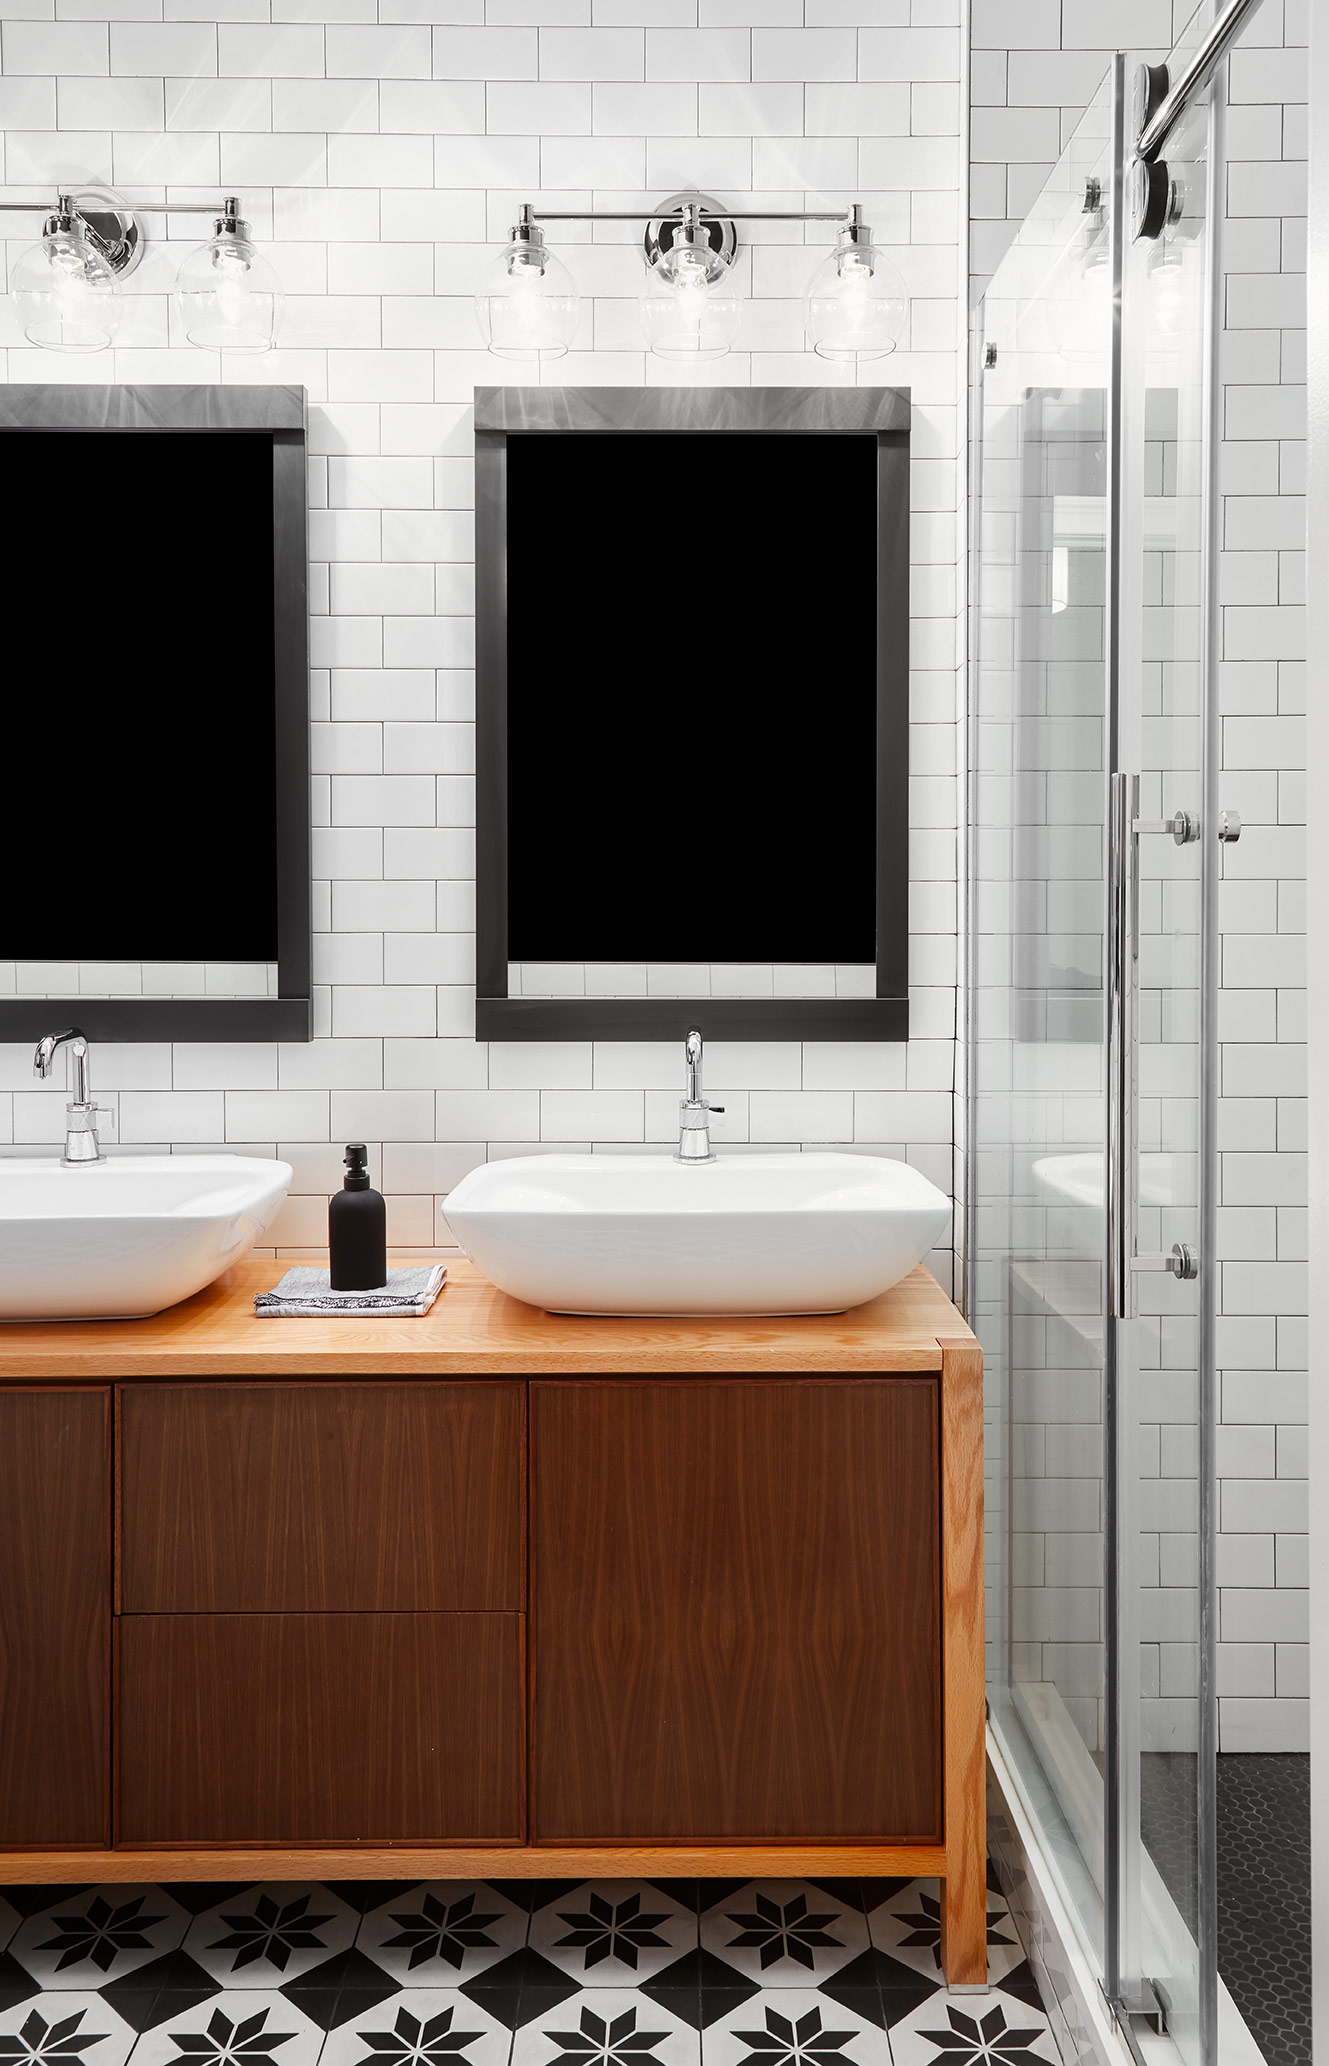 If you're planning to hire a contractor, it's safe to assume at least $25K for a bathroom renovation, and up from there depending on the size, level of finishes and fixtures you choose to incorporate.